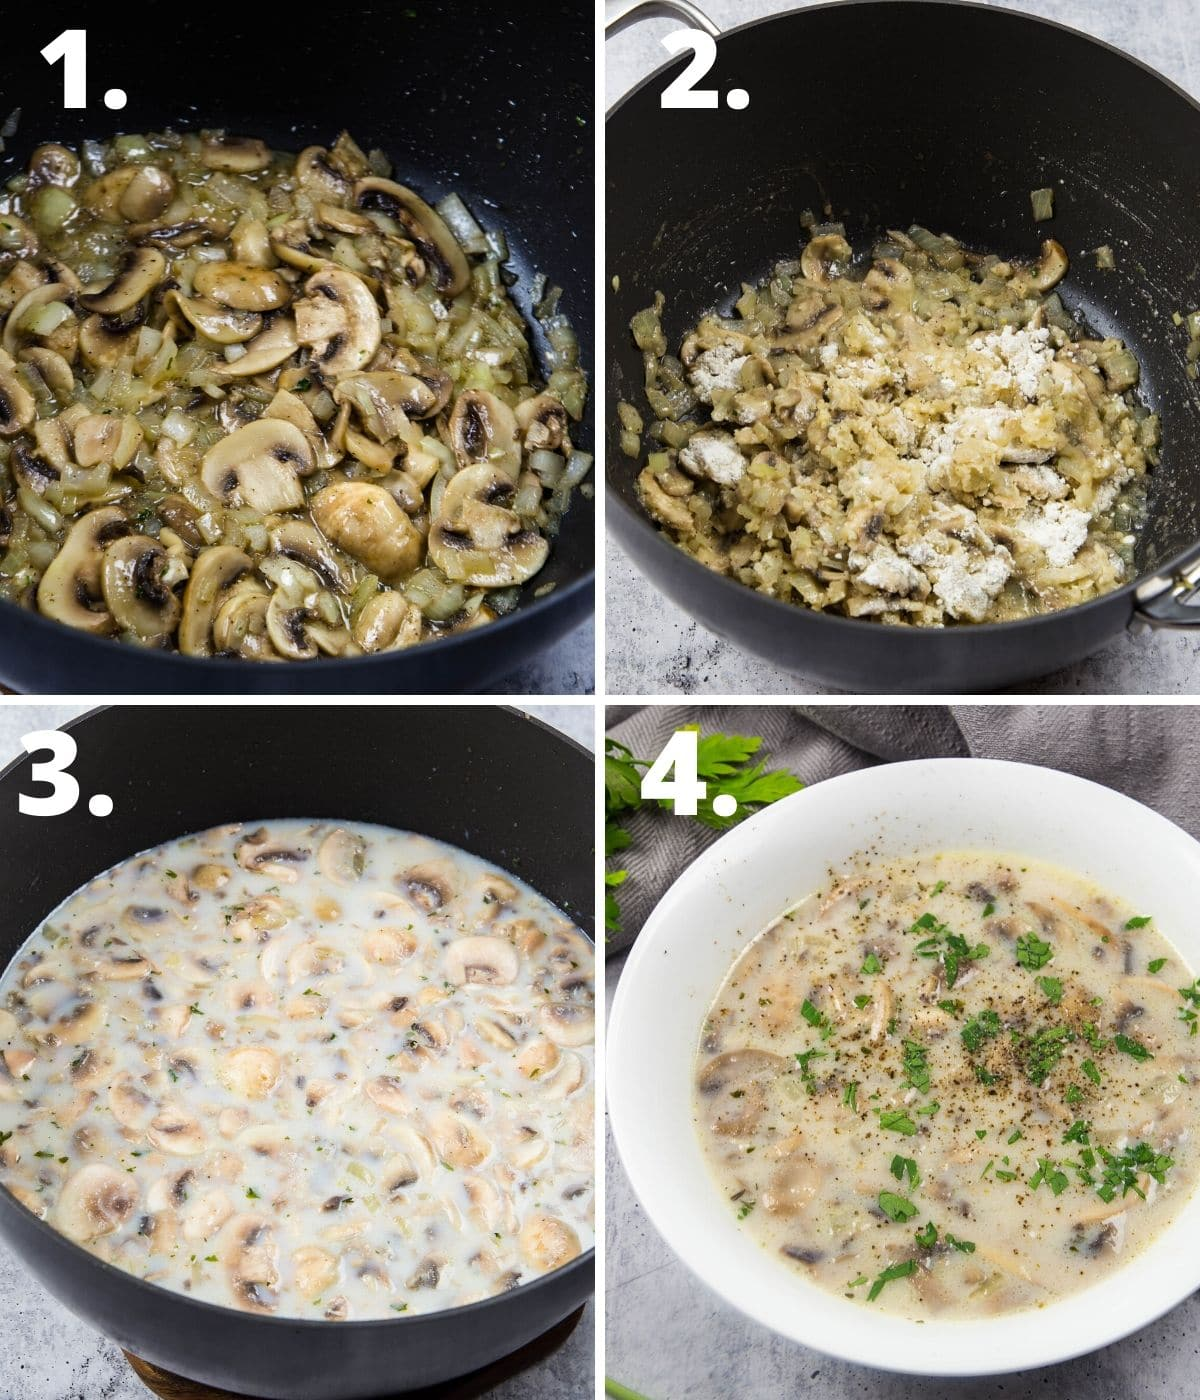 Step by step instructions to make creamy mushroom soup